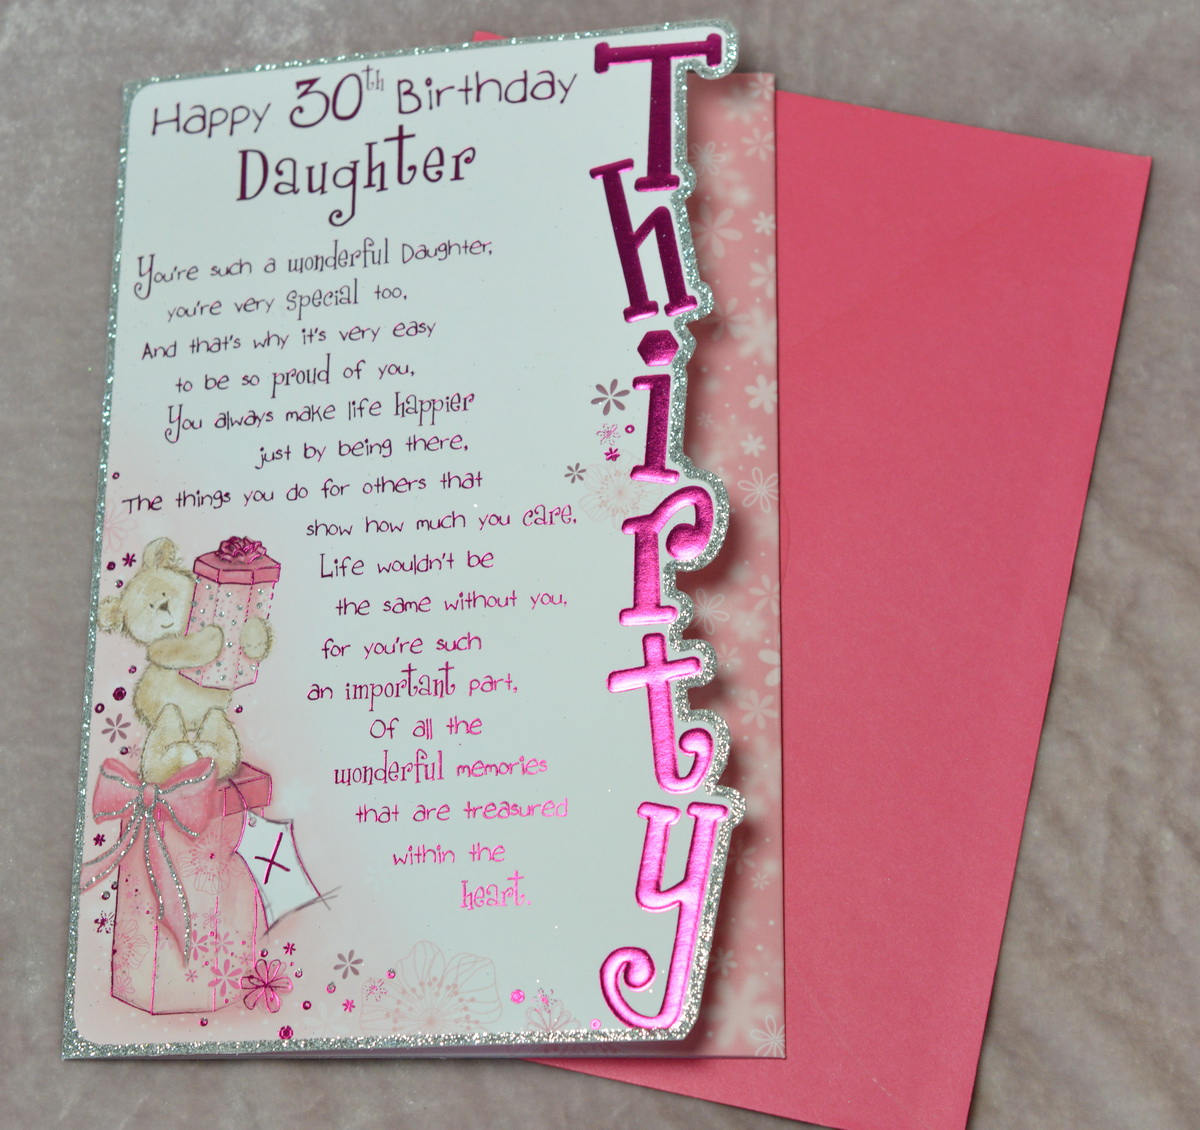 30 Happy Birthday Daughter Handmade Greeting Cards Blog For Women